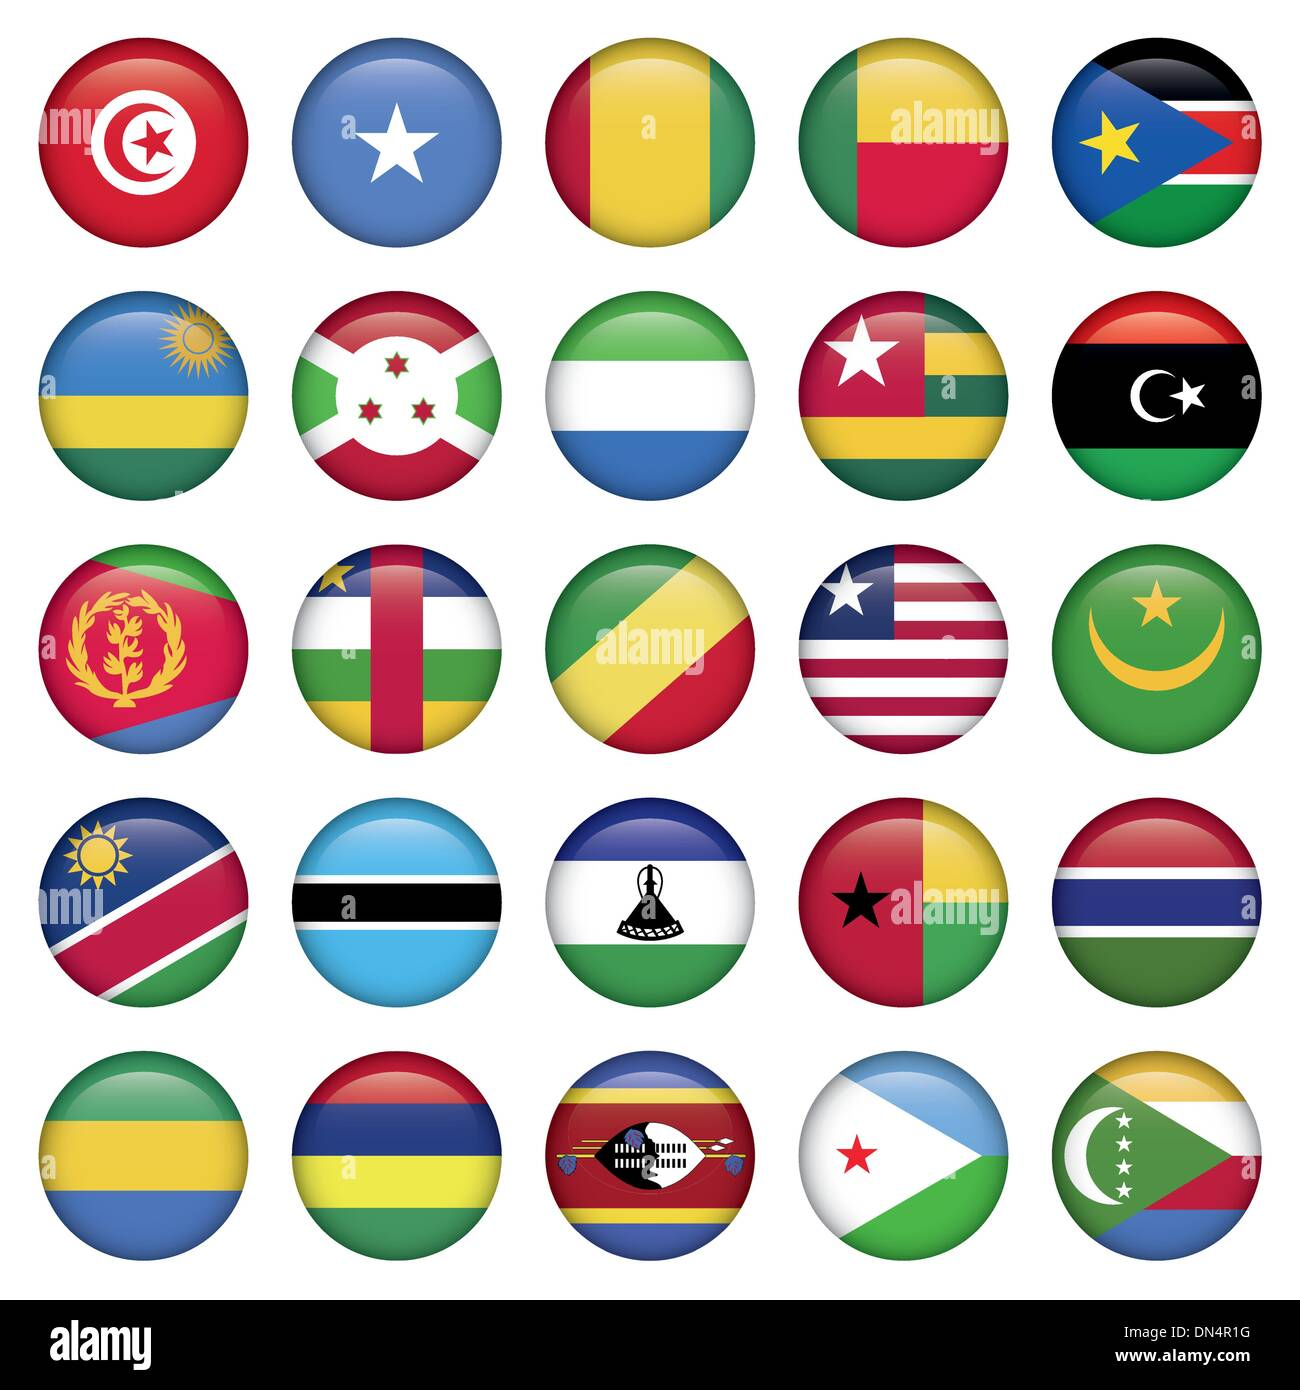 Africa Flags Round Buttons Stock Vector